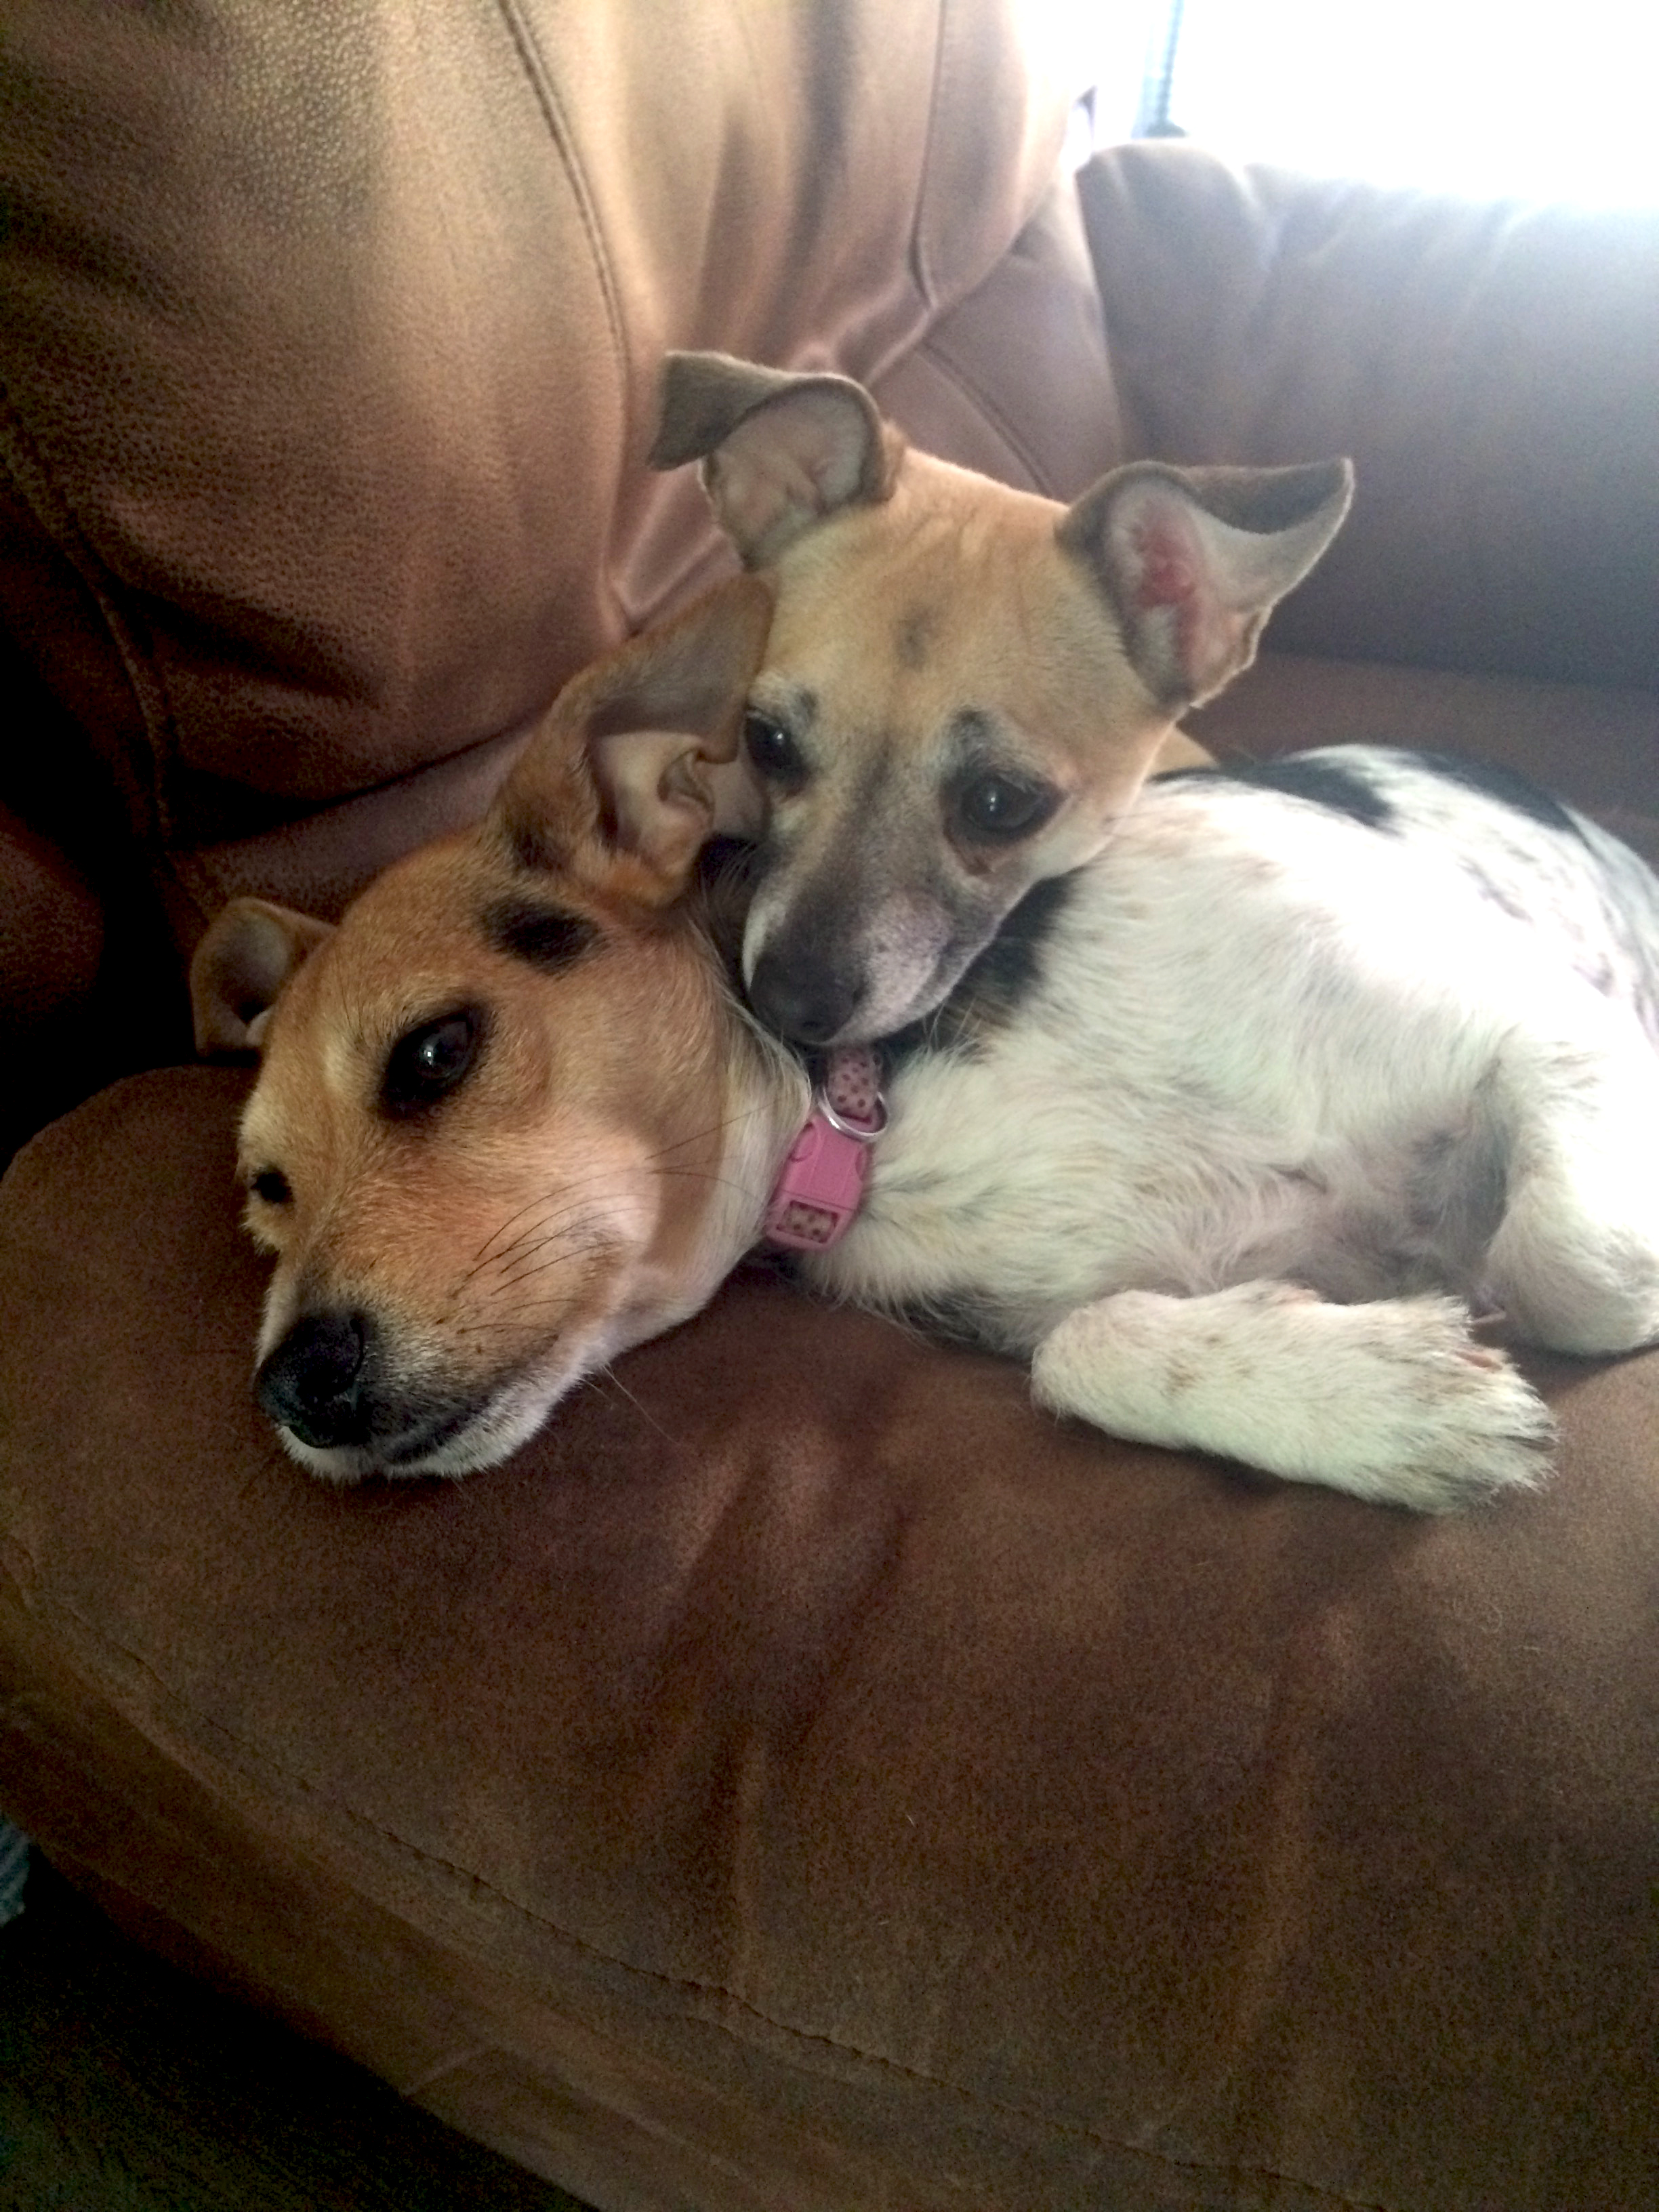 My two dogs relaxing on the chair (Roxy & Ruby)